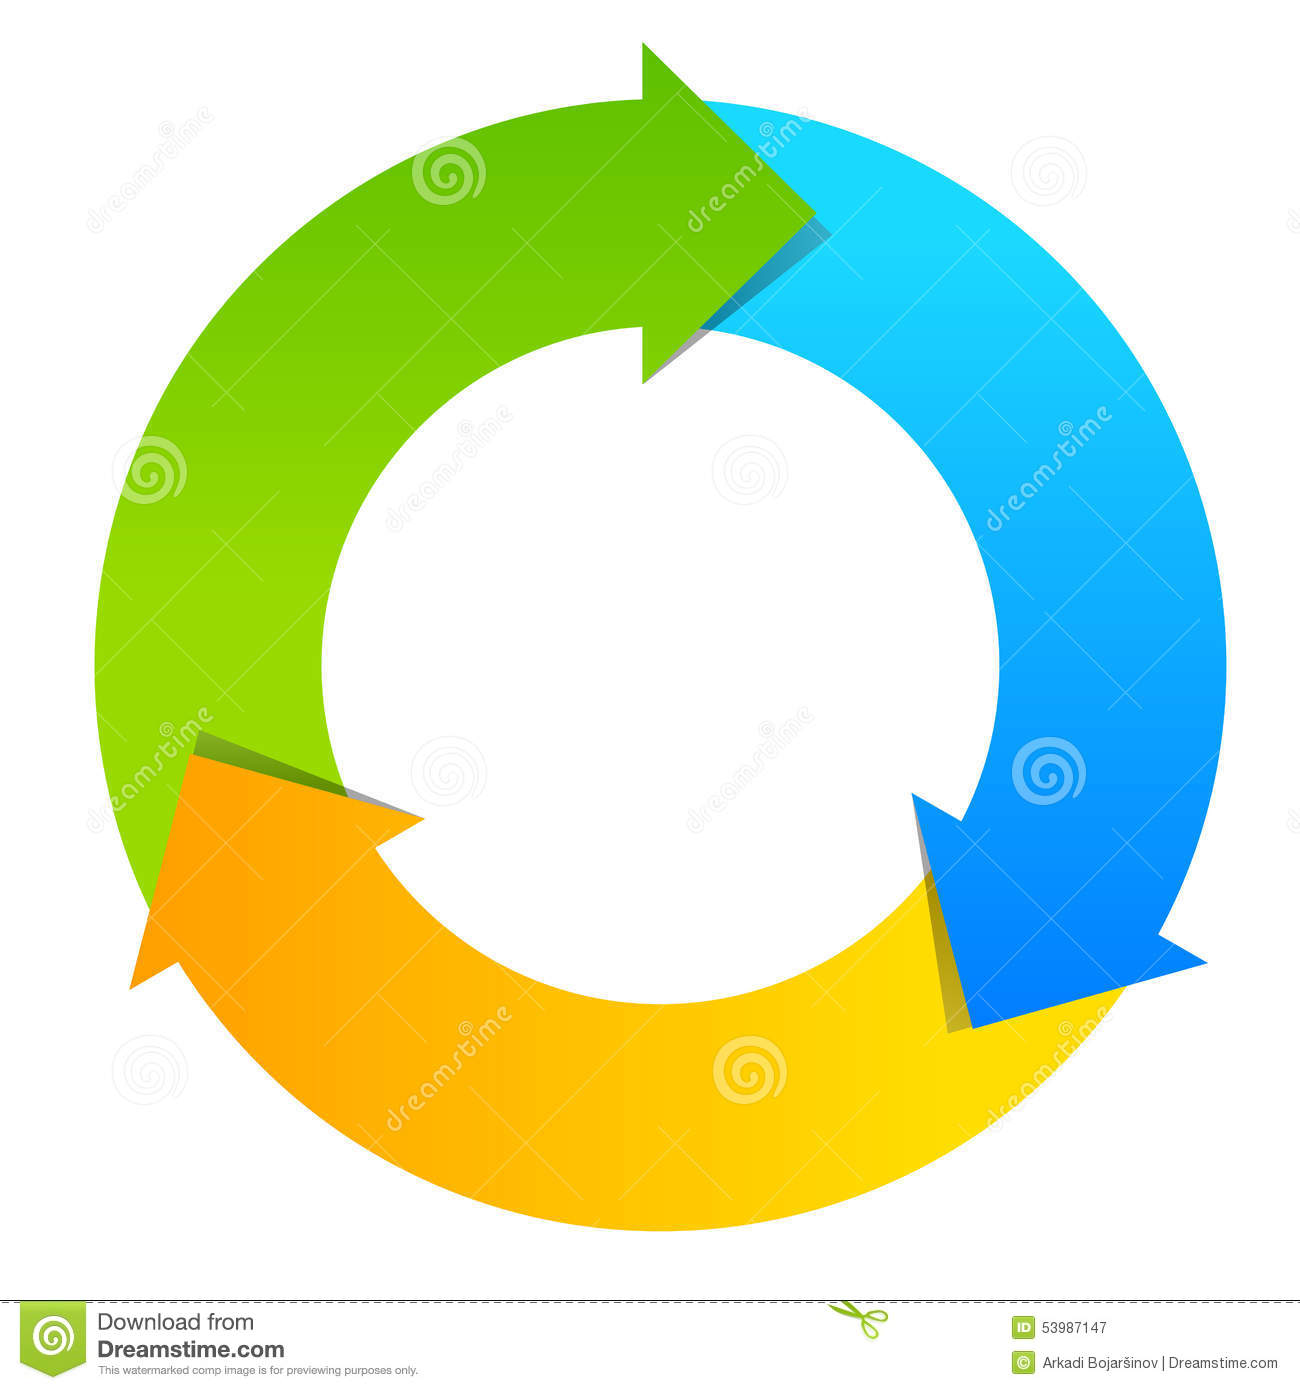 Three Part Cycle Diagram Stock Vector  Illustration Of